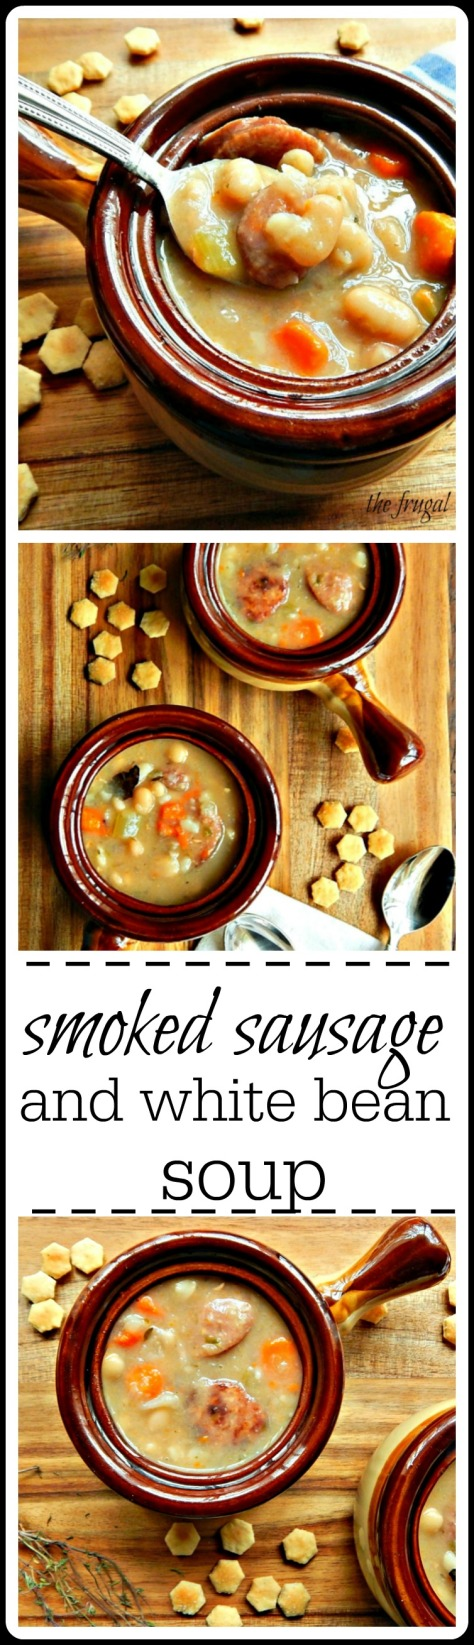 This down home & classic bean soup is fantastic stove-top or in the Instant Pot!